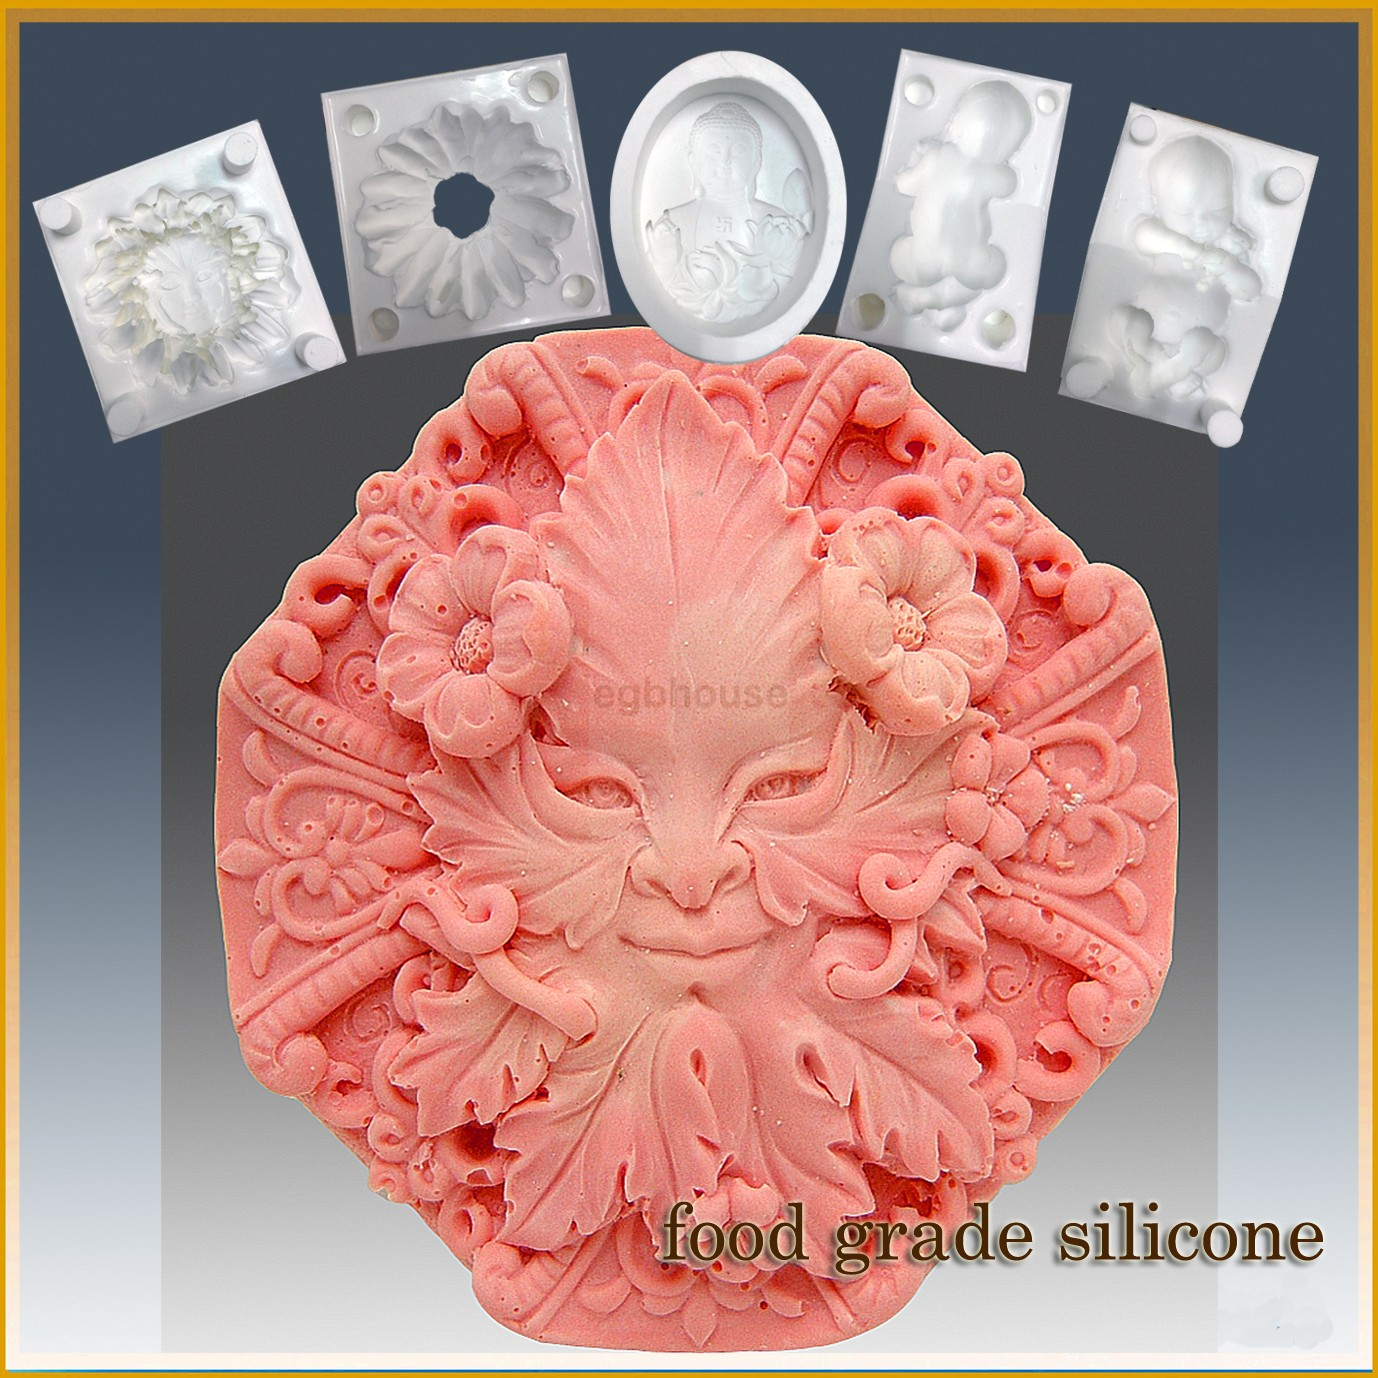 Smiling Rosette Octagon- Detail of high relief sculpture - Food grade